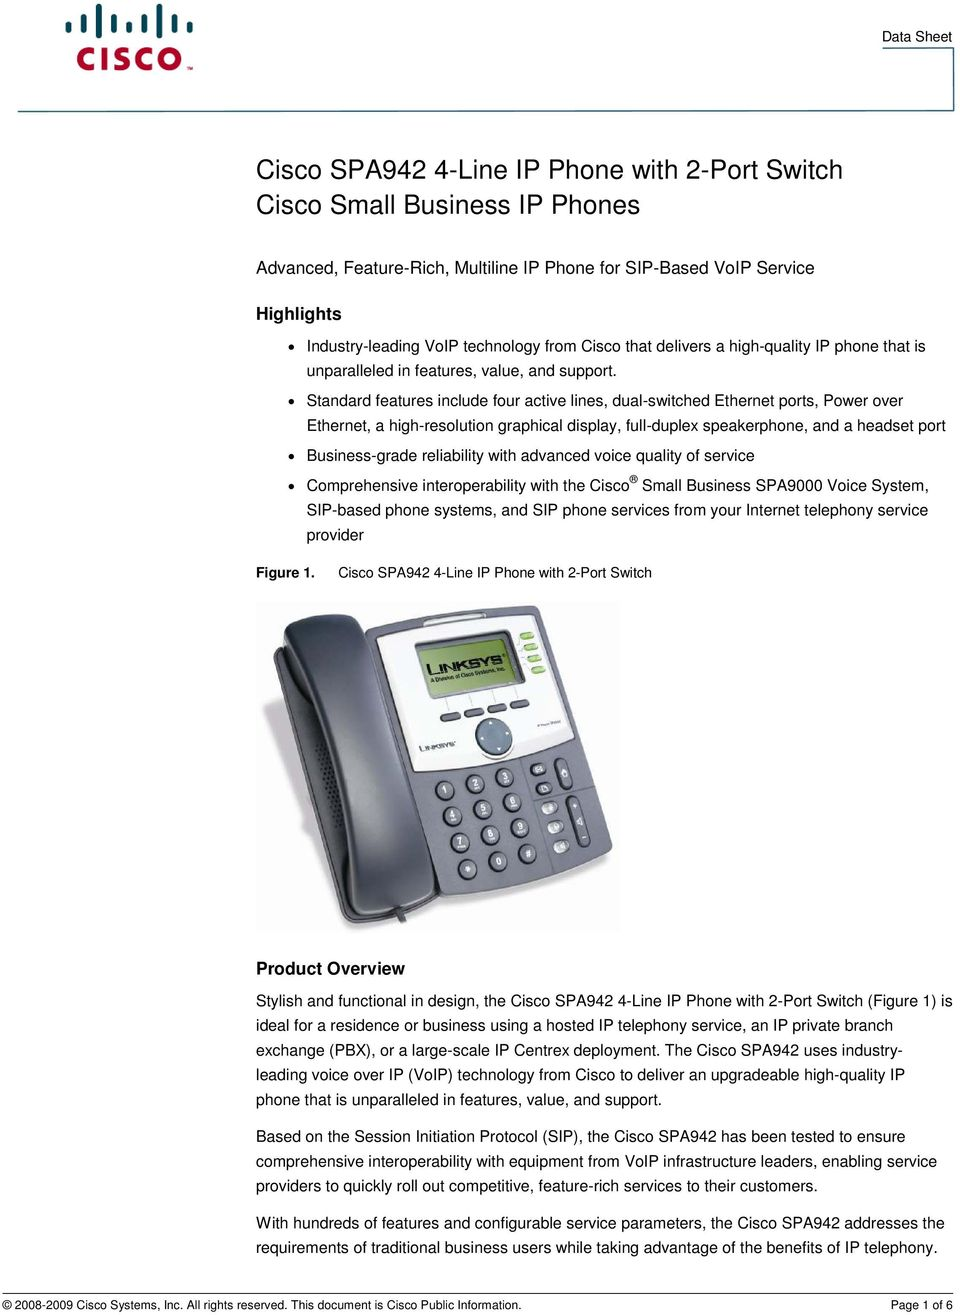 Cisco SPA942 4-Line IP Phone with 2-Port Switch Cisco Small Business